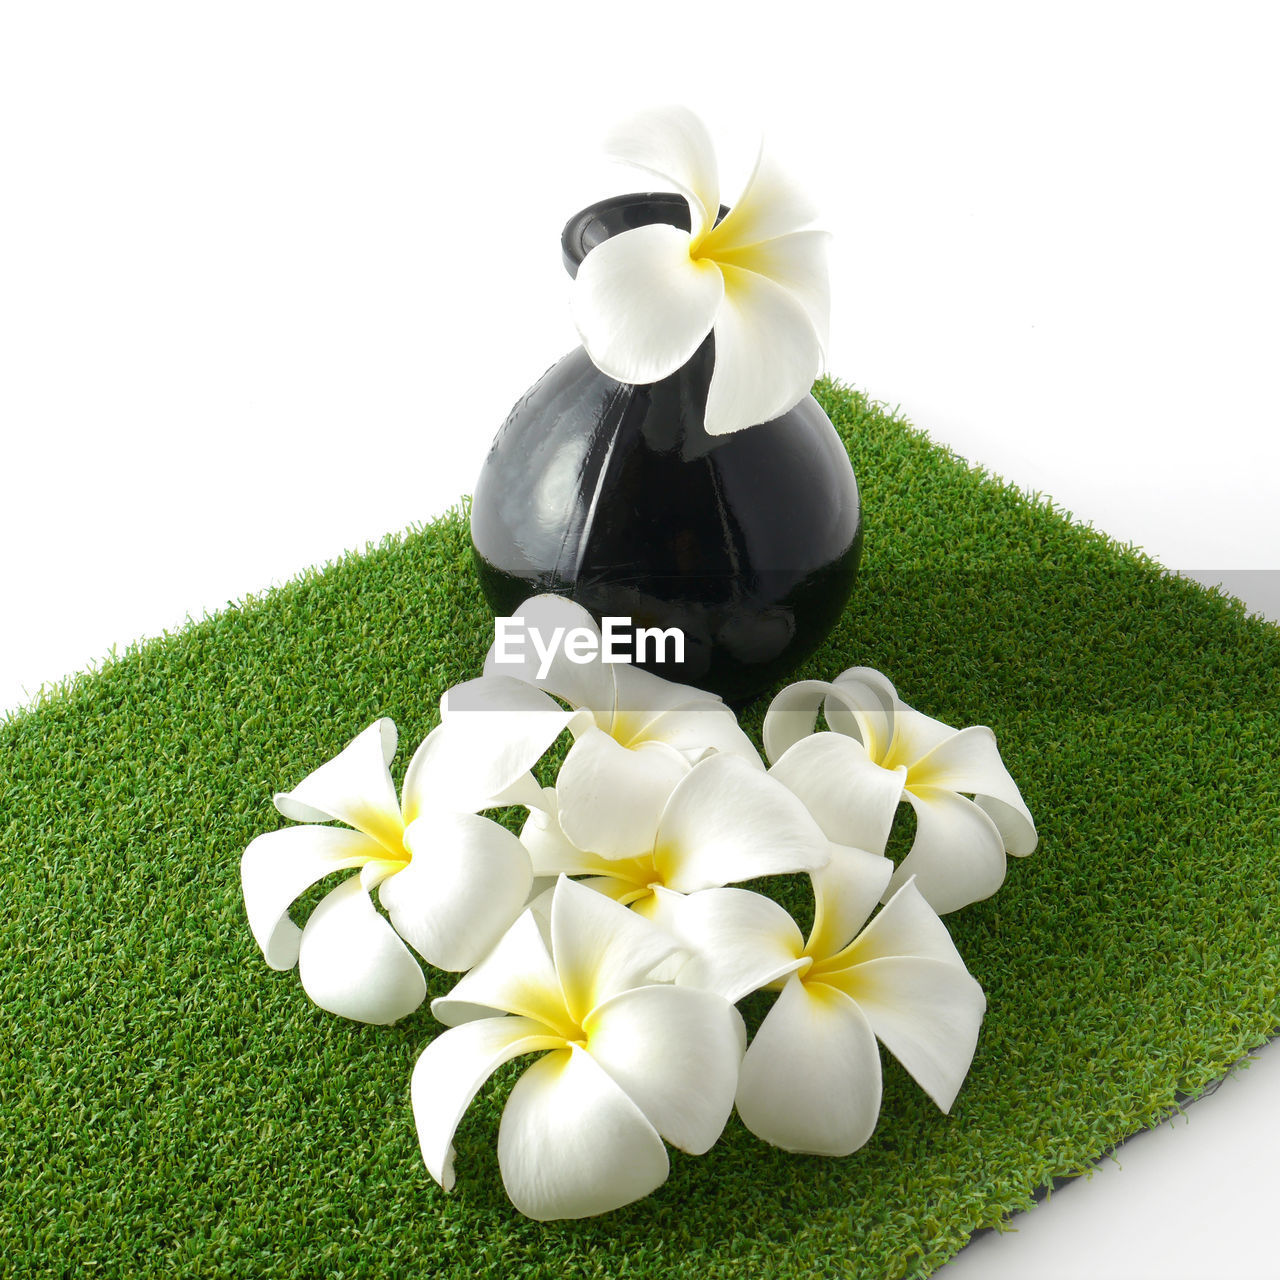 plant, flowering plant, flower, beauty in nature, freshness, white color, vulnerability, fragility, nature, inflorescence, petal, flower head, frangipani, green color, close-up, high angle view, no people, grass, white background, growth